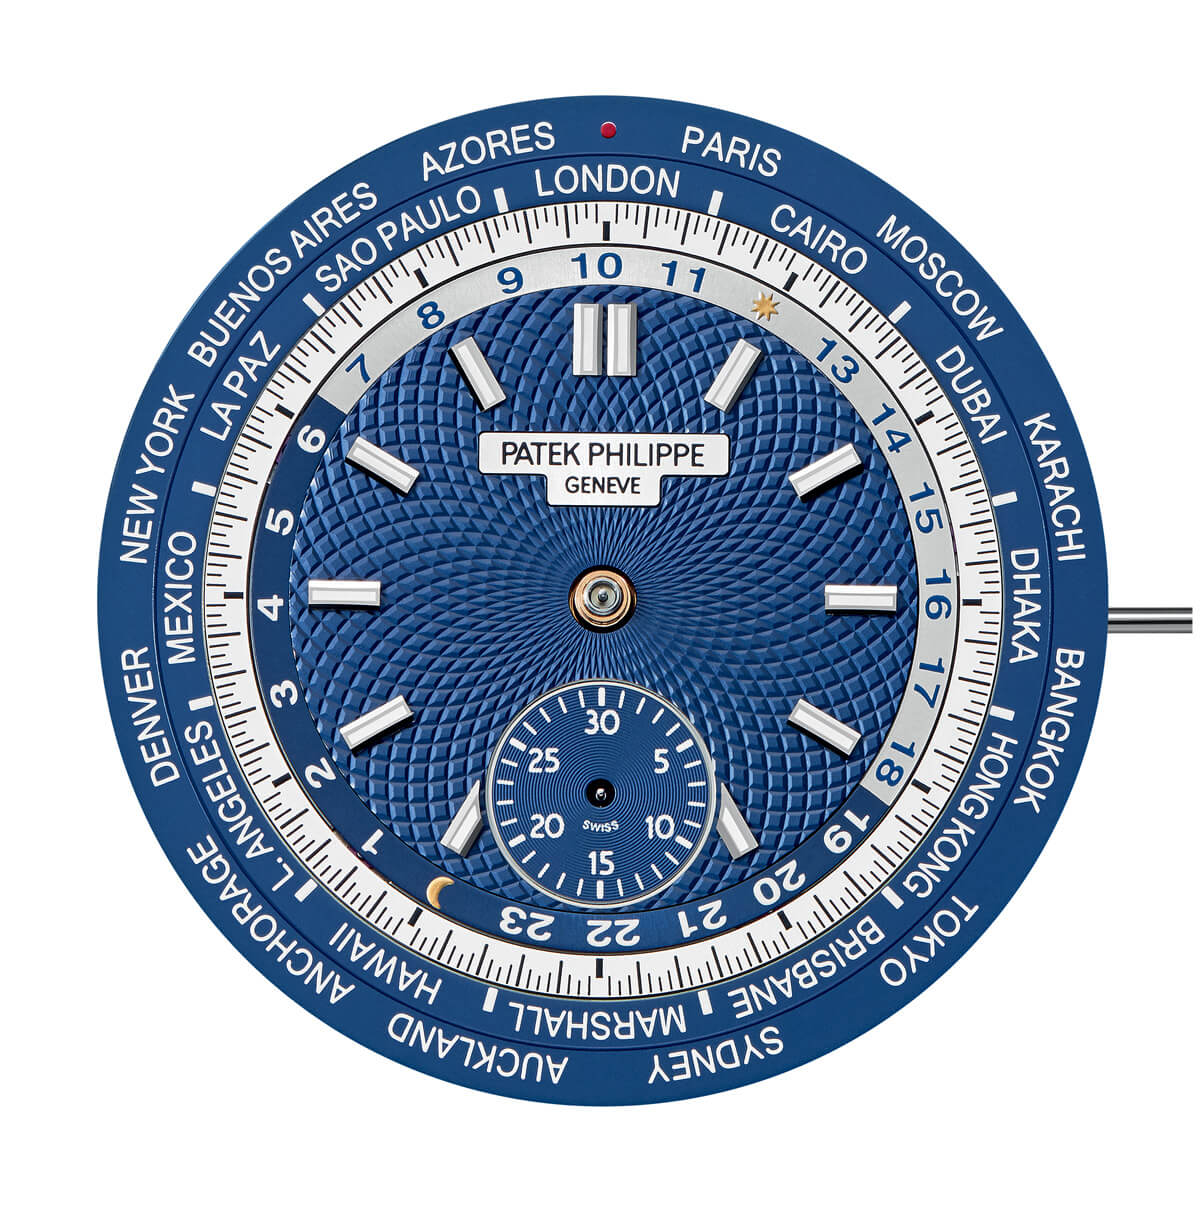 Patek_Philippe_World_Time_Chronograph_Ref. 5930_dial3 - ESCAPEMENT Magazine - watch reviews by Angus Davies